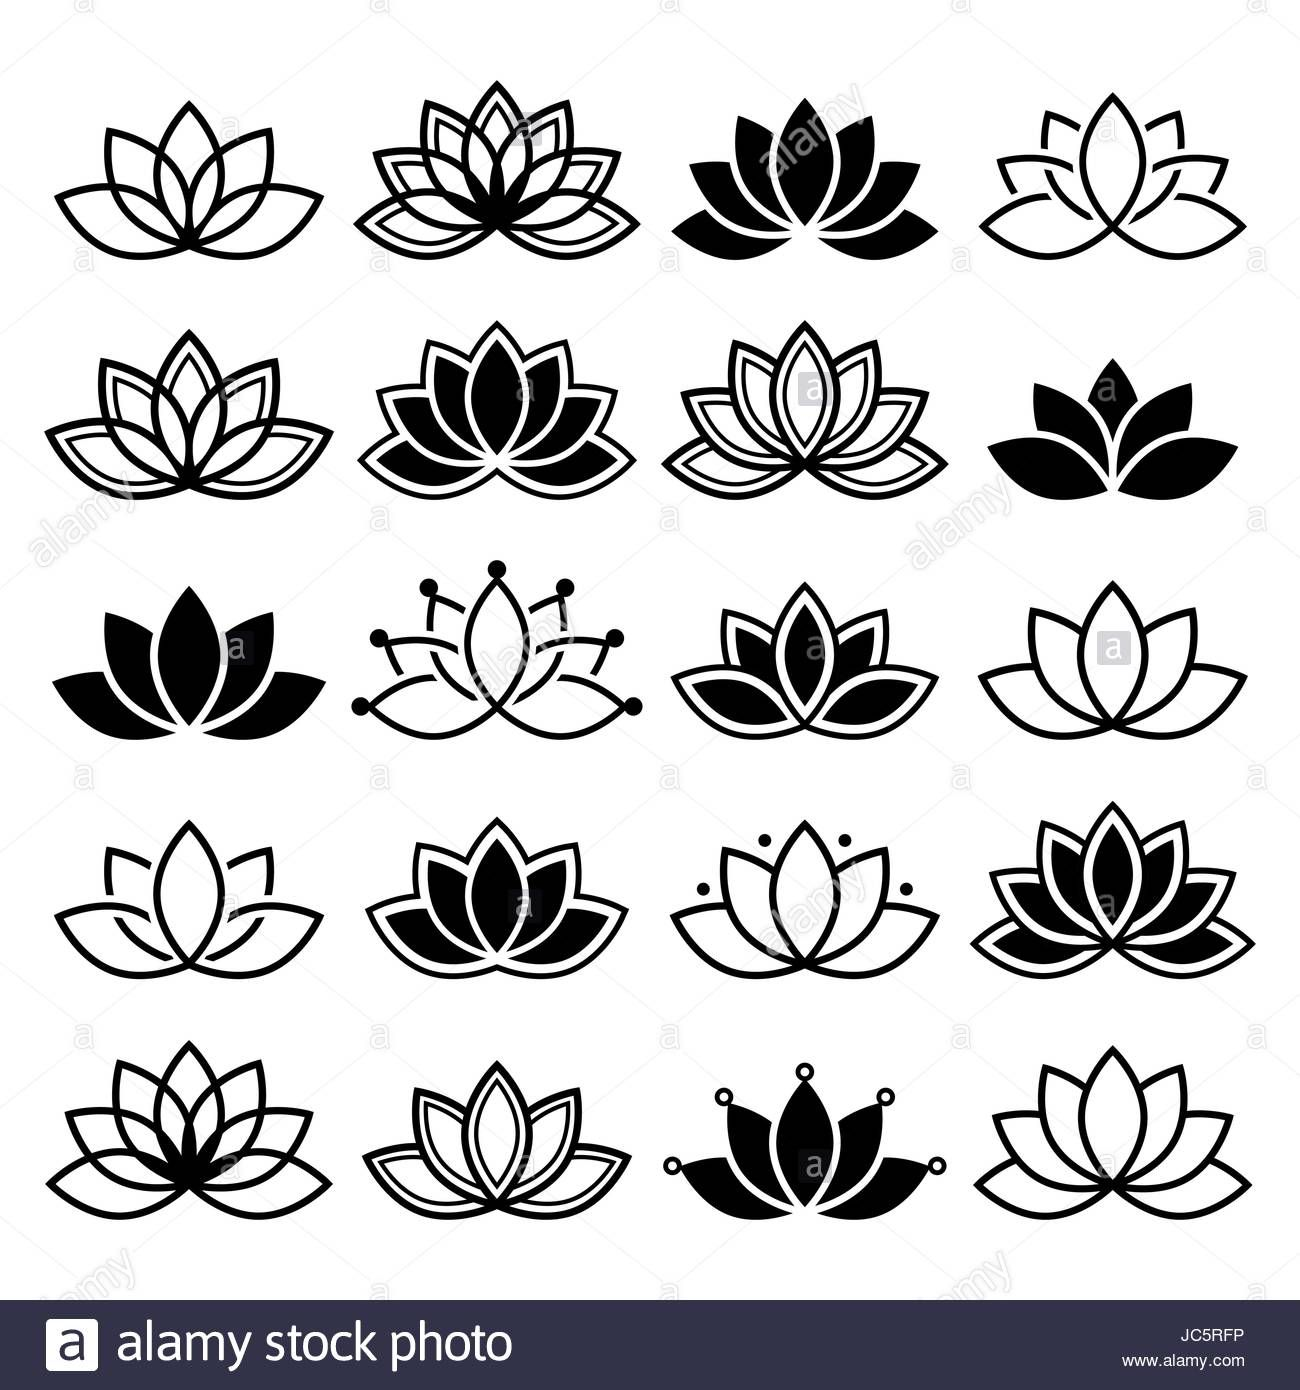 3 petals lotus flower clipart.